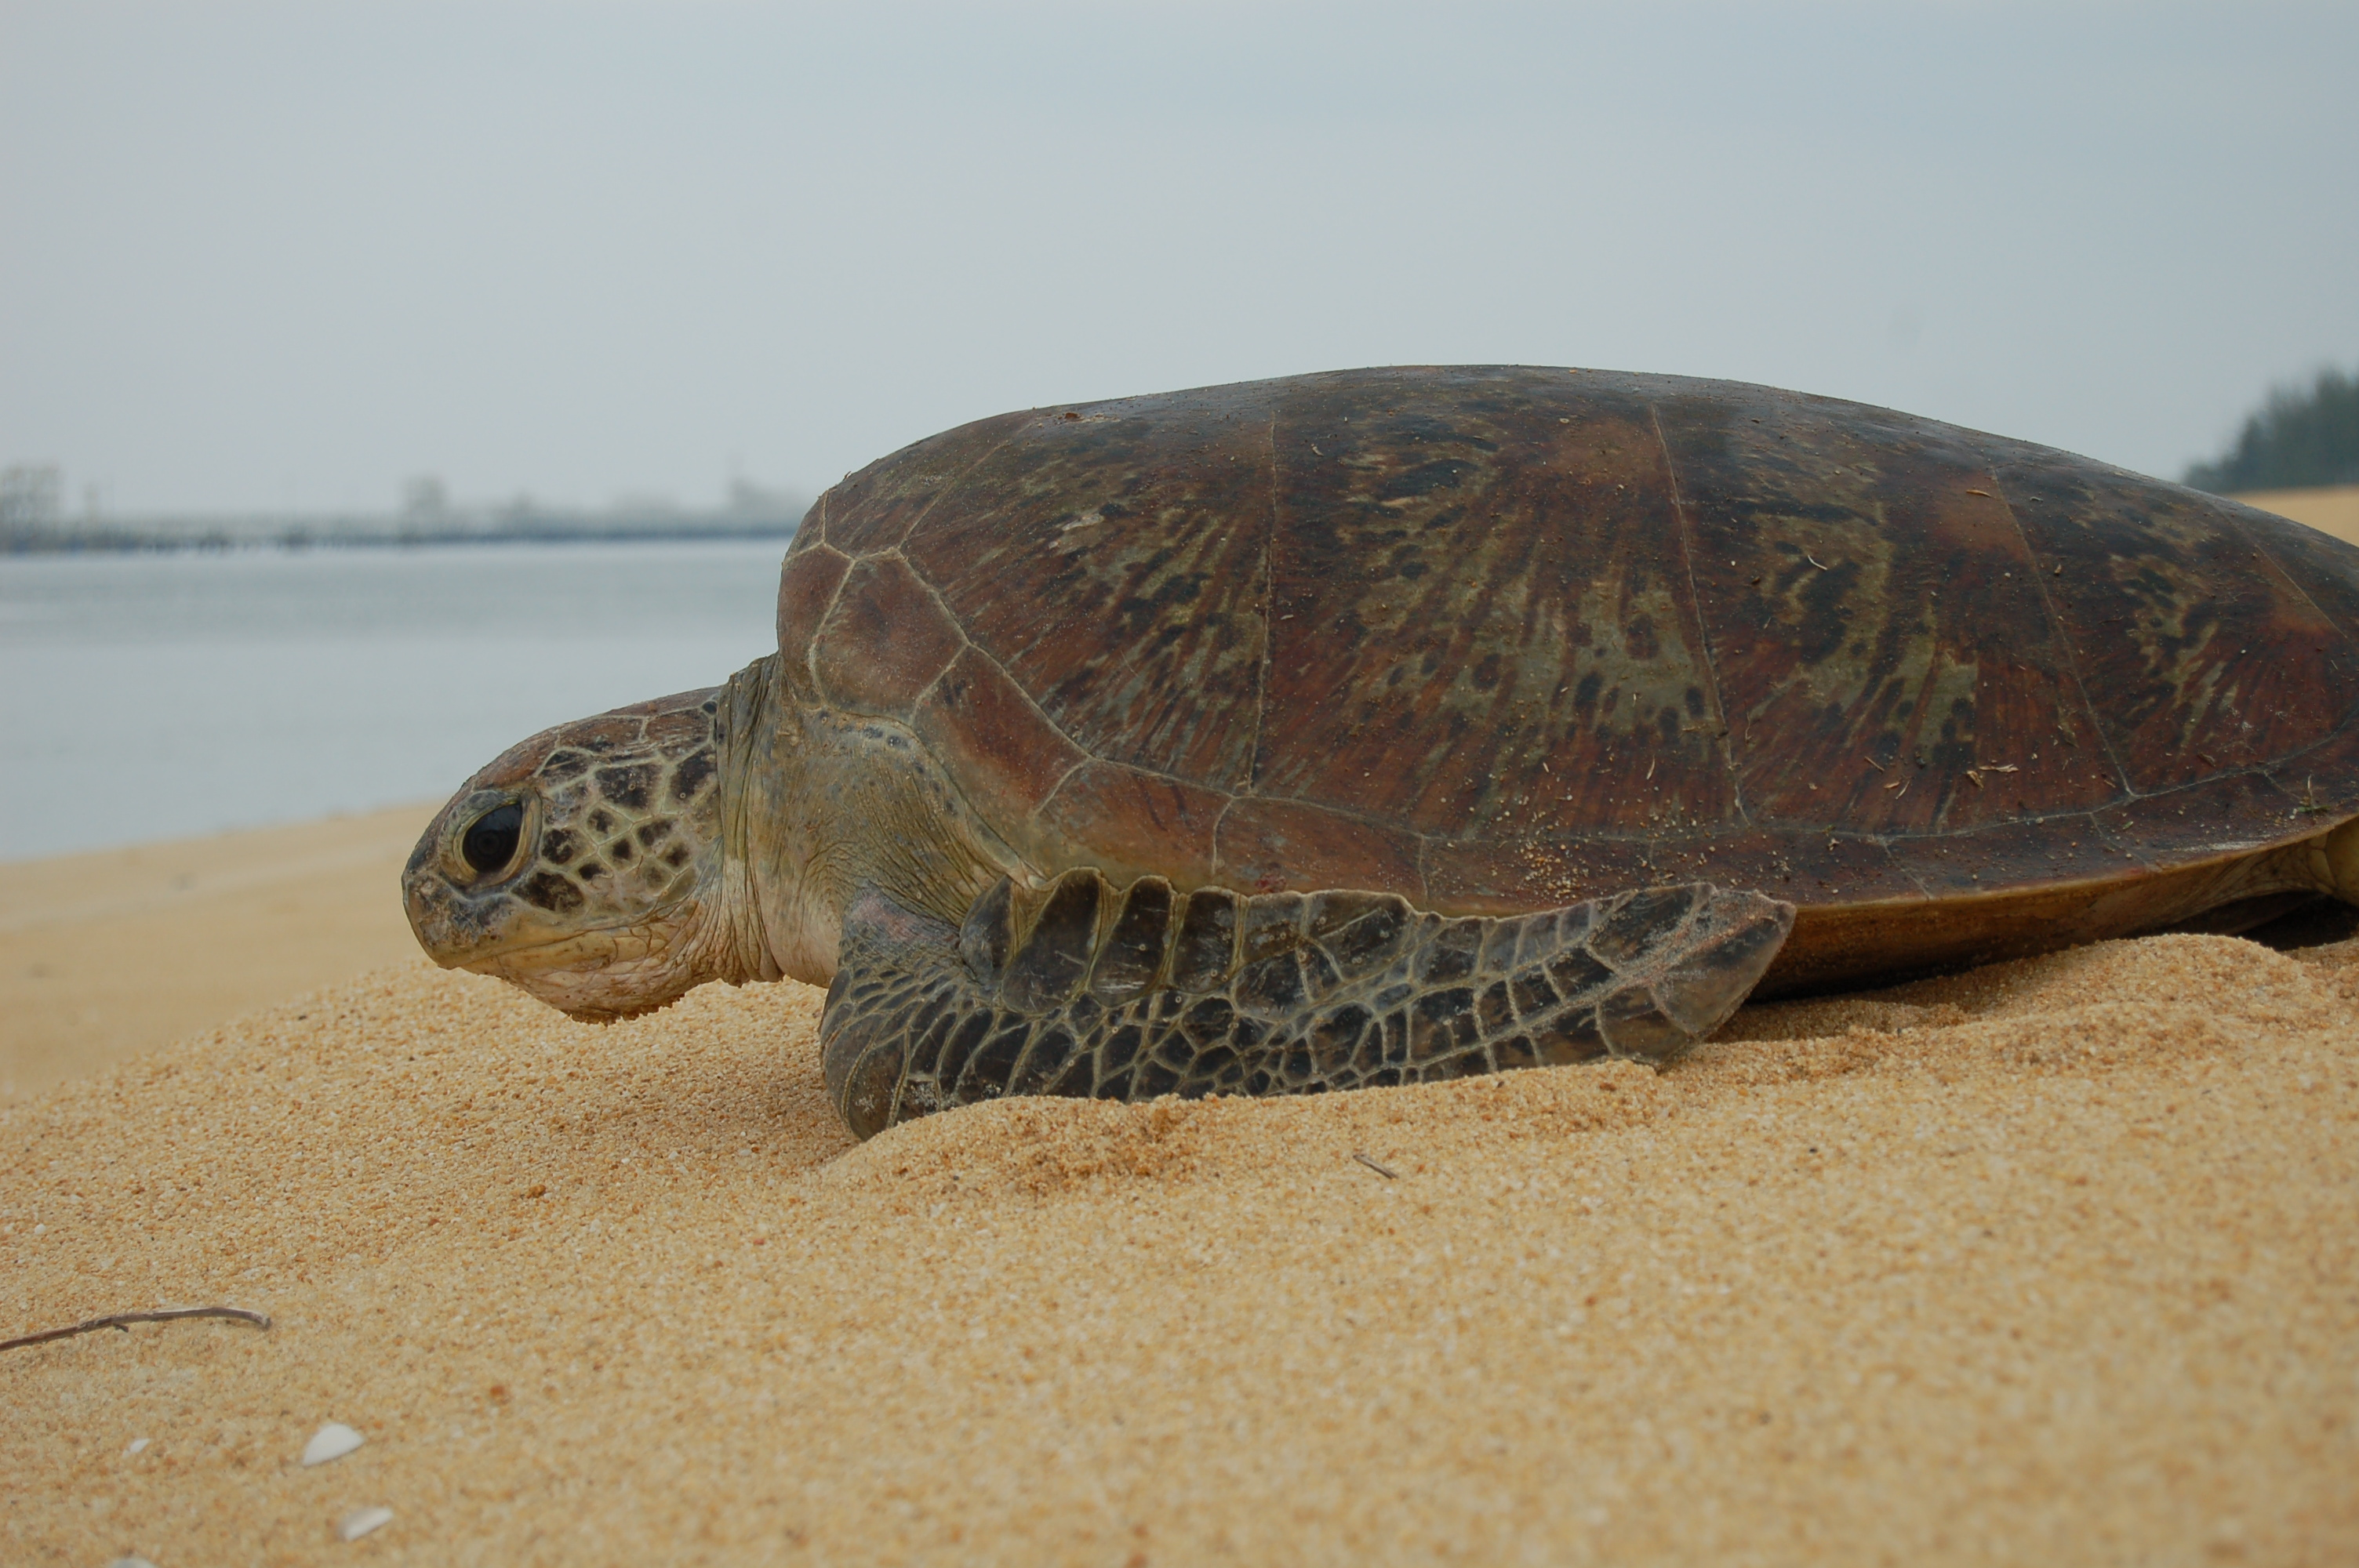 Malaysian turtle photo